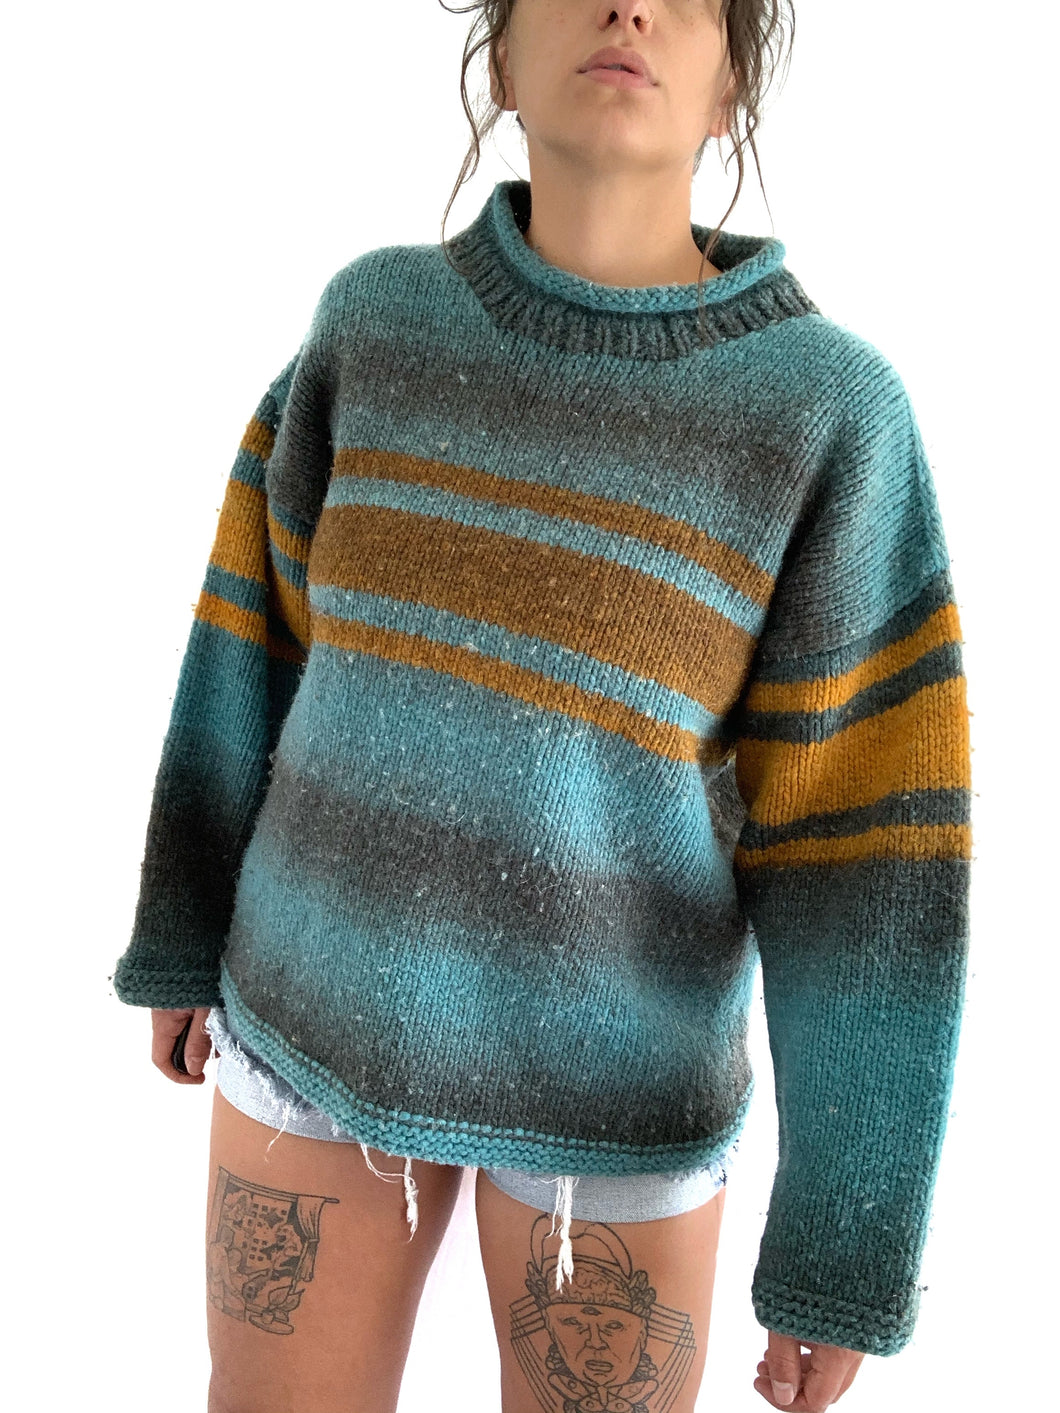 Vintage Cozy Wool Sweater